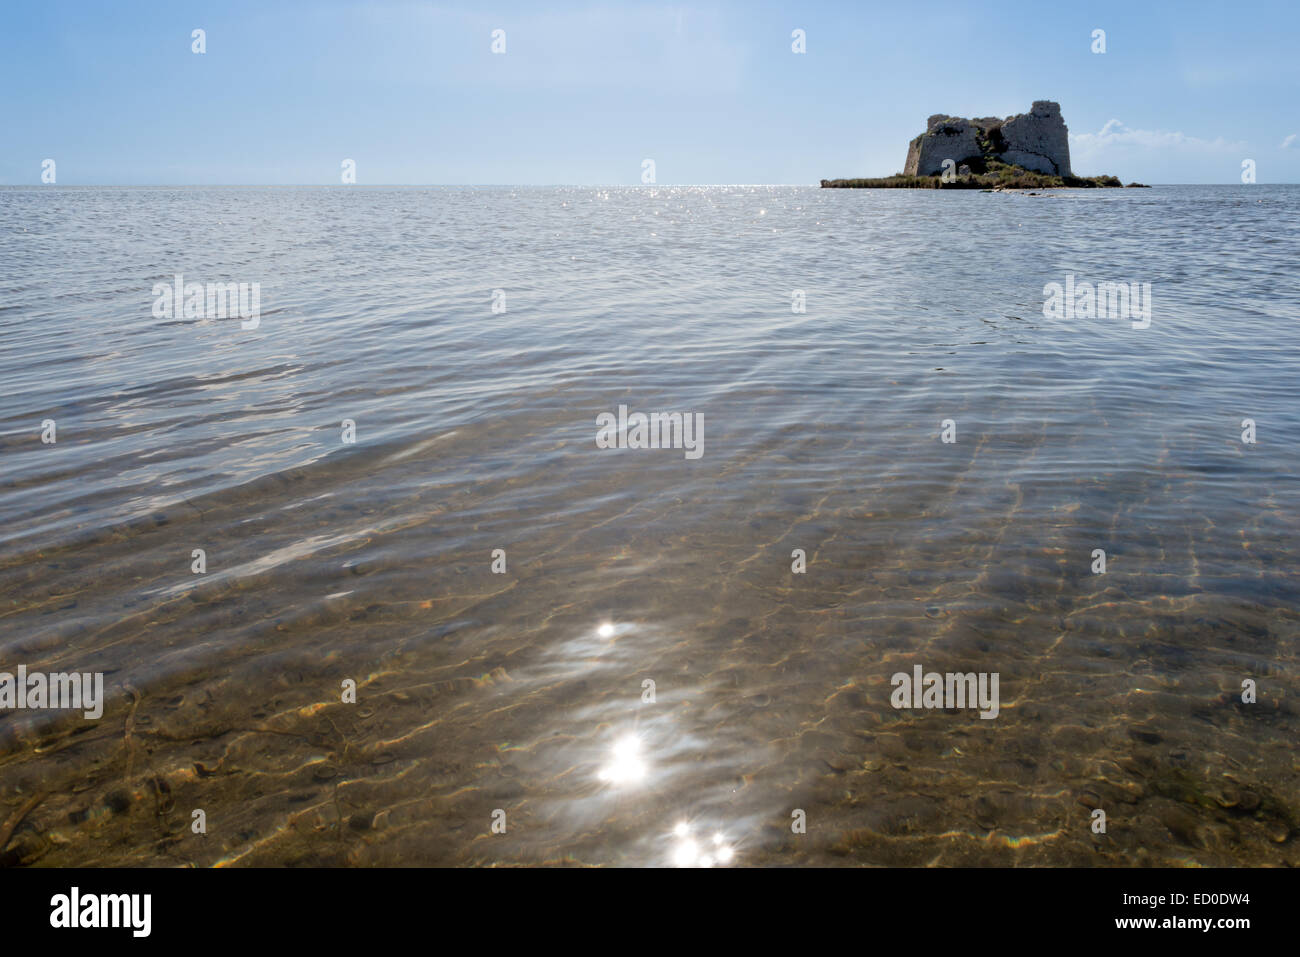 Spain, Catalonia, Tarragona, Alfacs Bay, Close-up view of calm shallow sea with ruins of Sant Joan Tower in distance - Stock Image